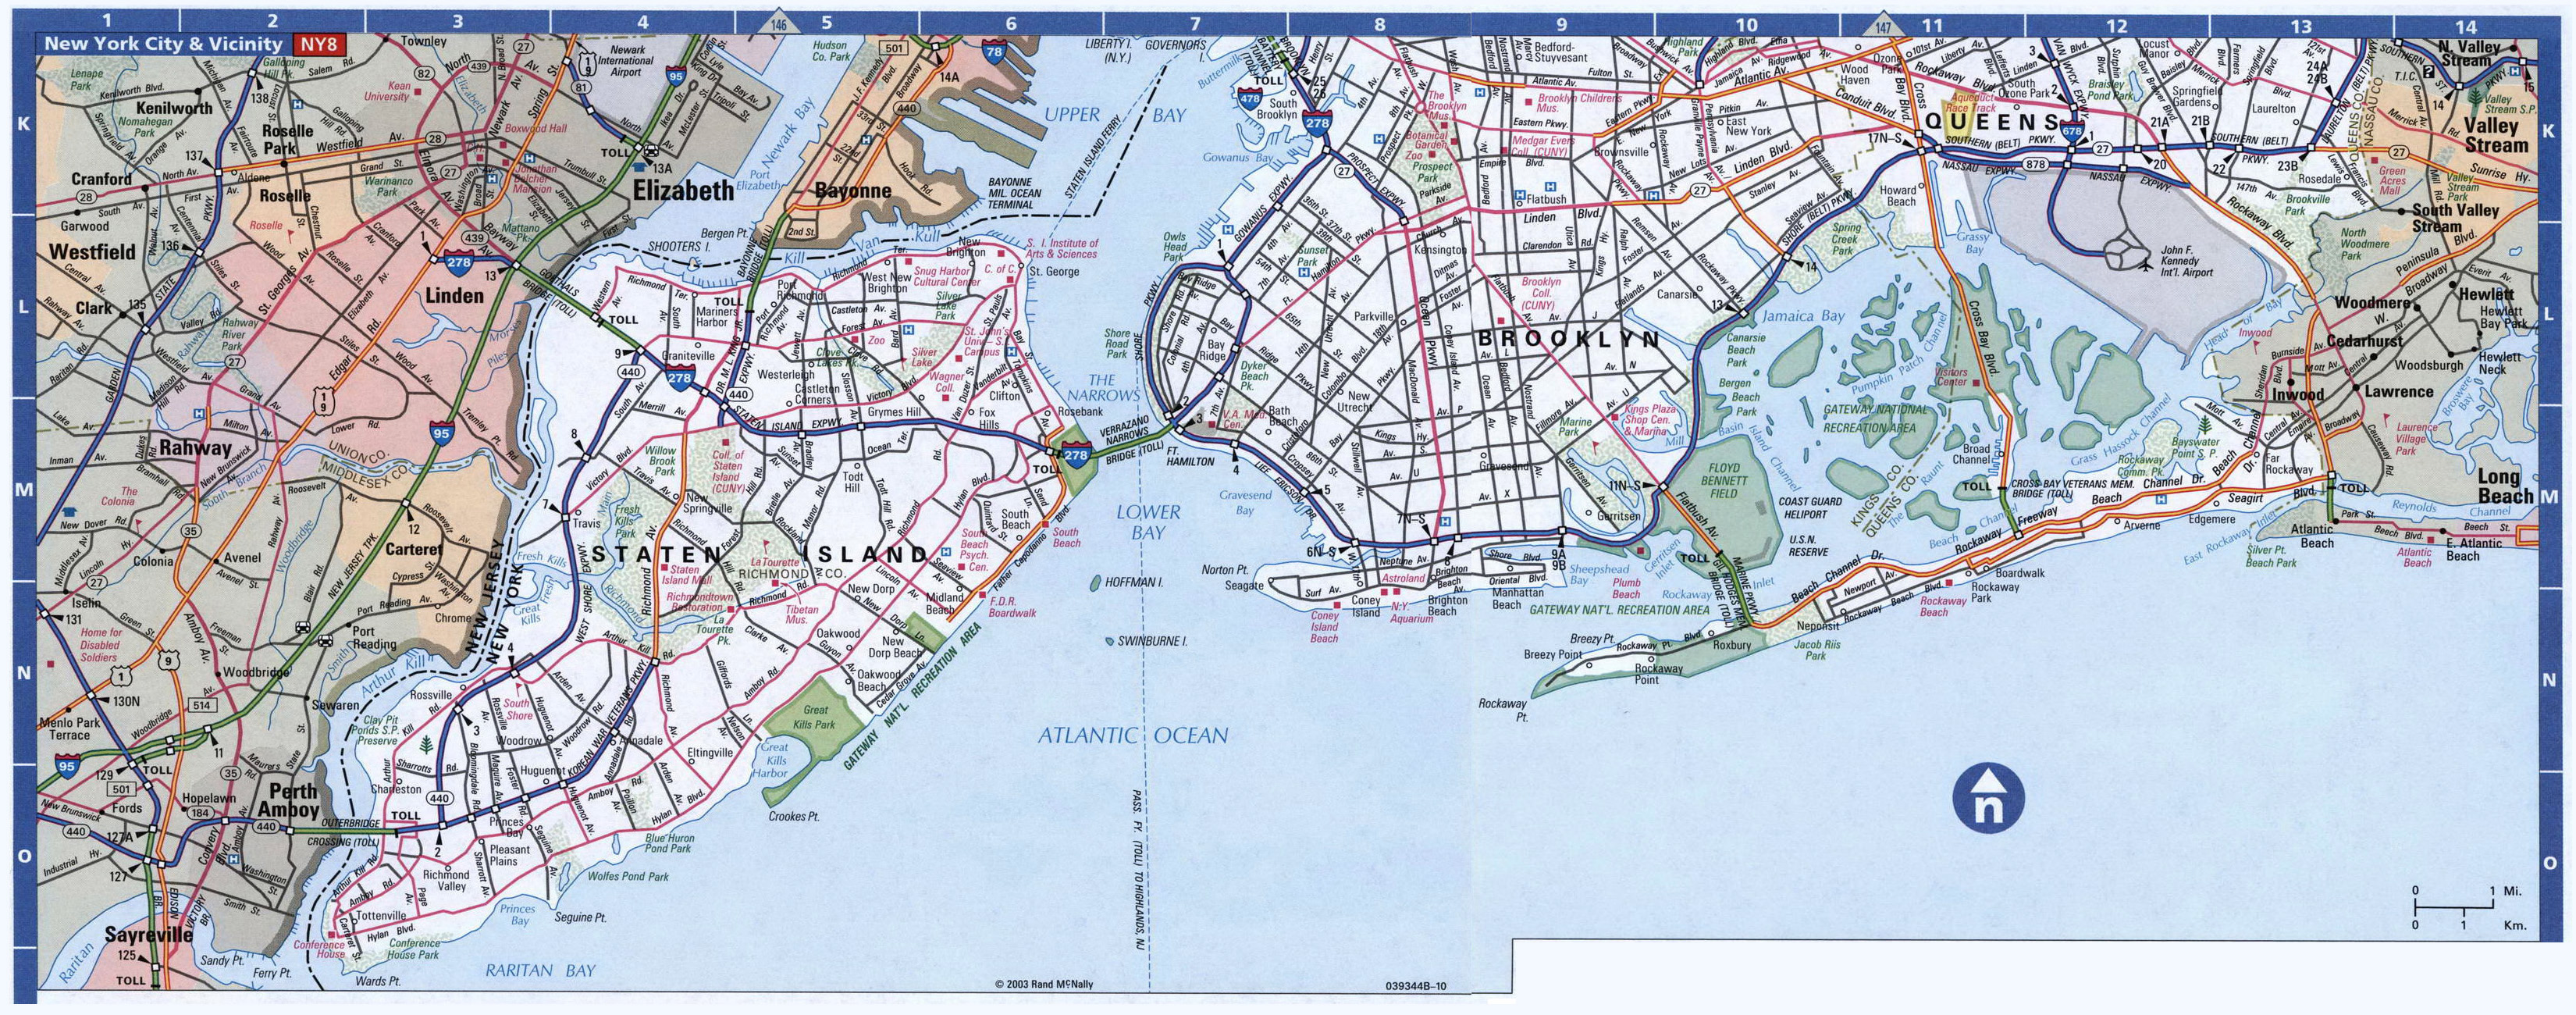 detailed map of brooklyn Large Detailed Road Map Of Staten Island Brooklyn And Queens detailed map of brooklyn